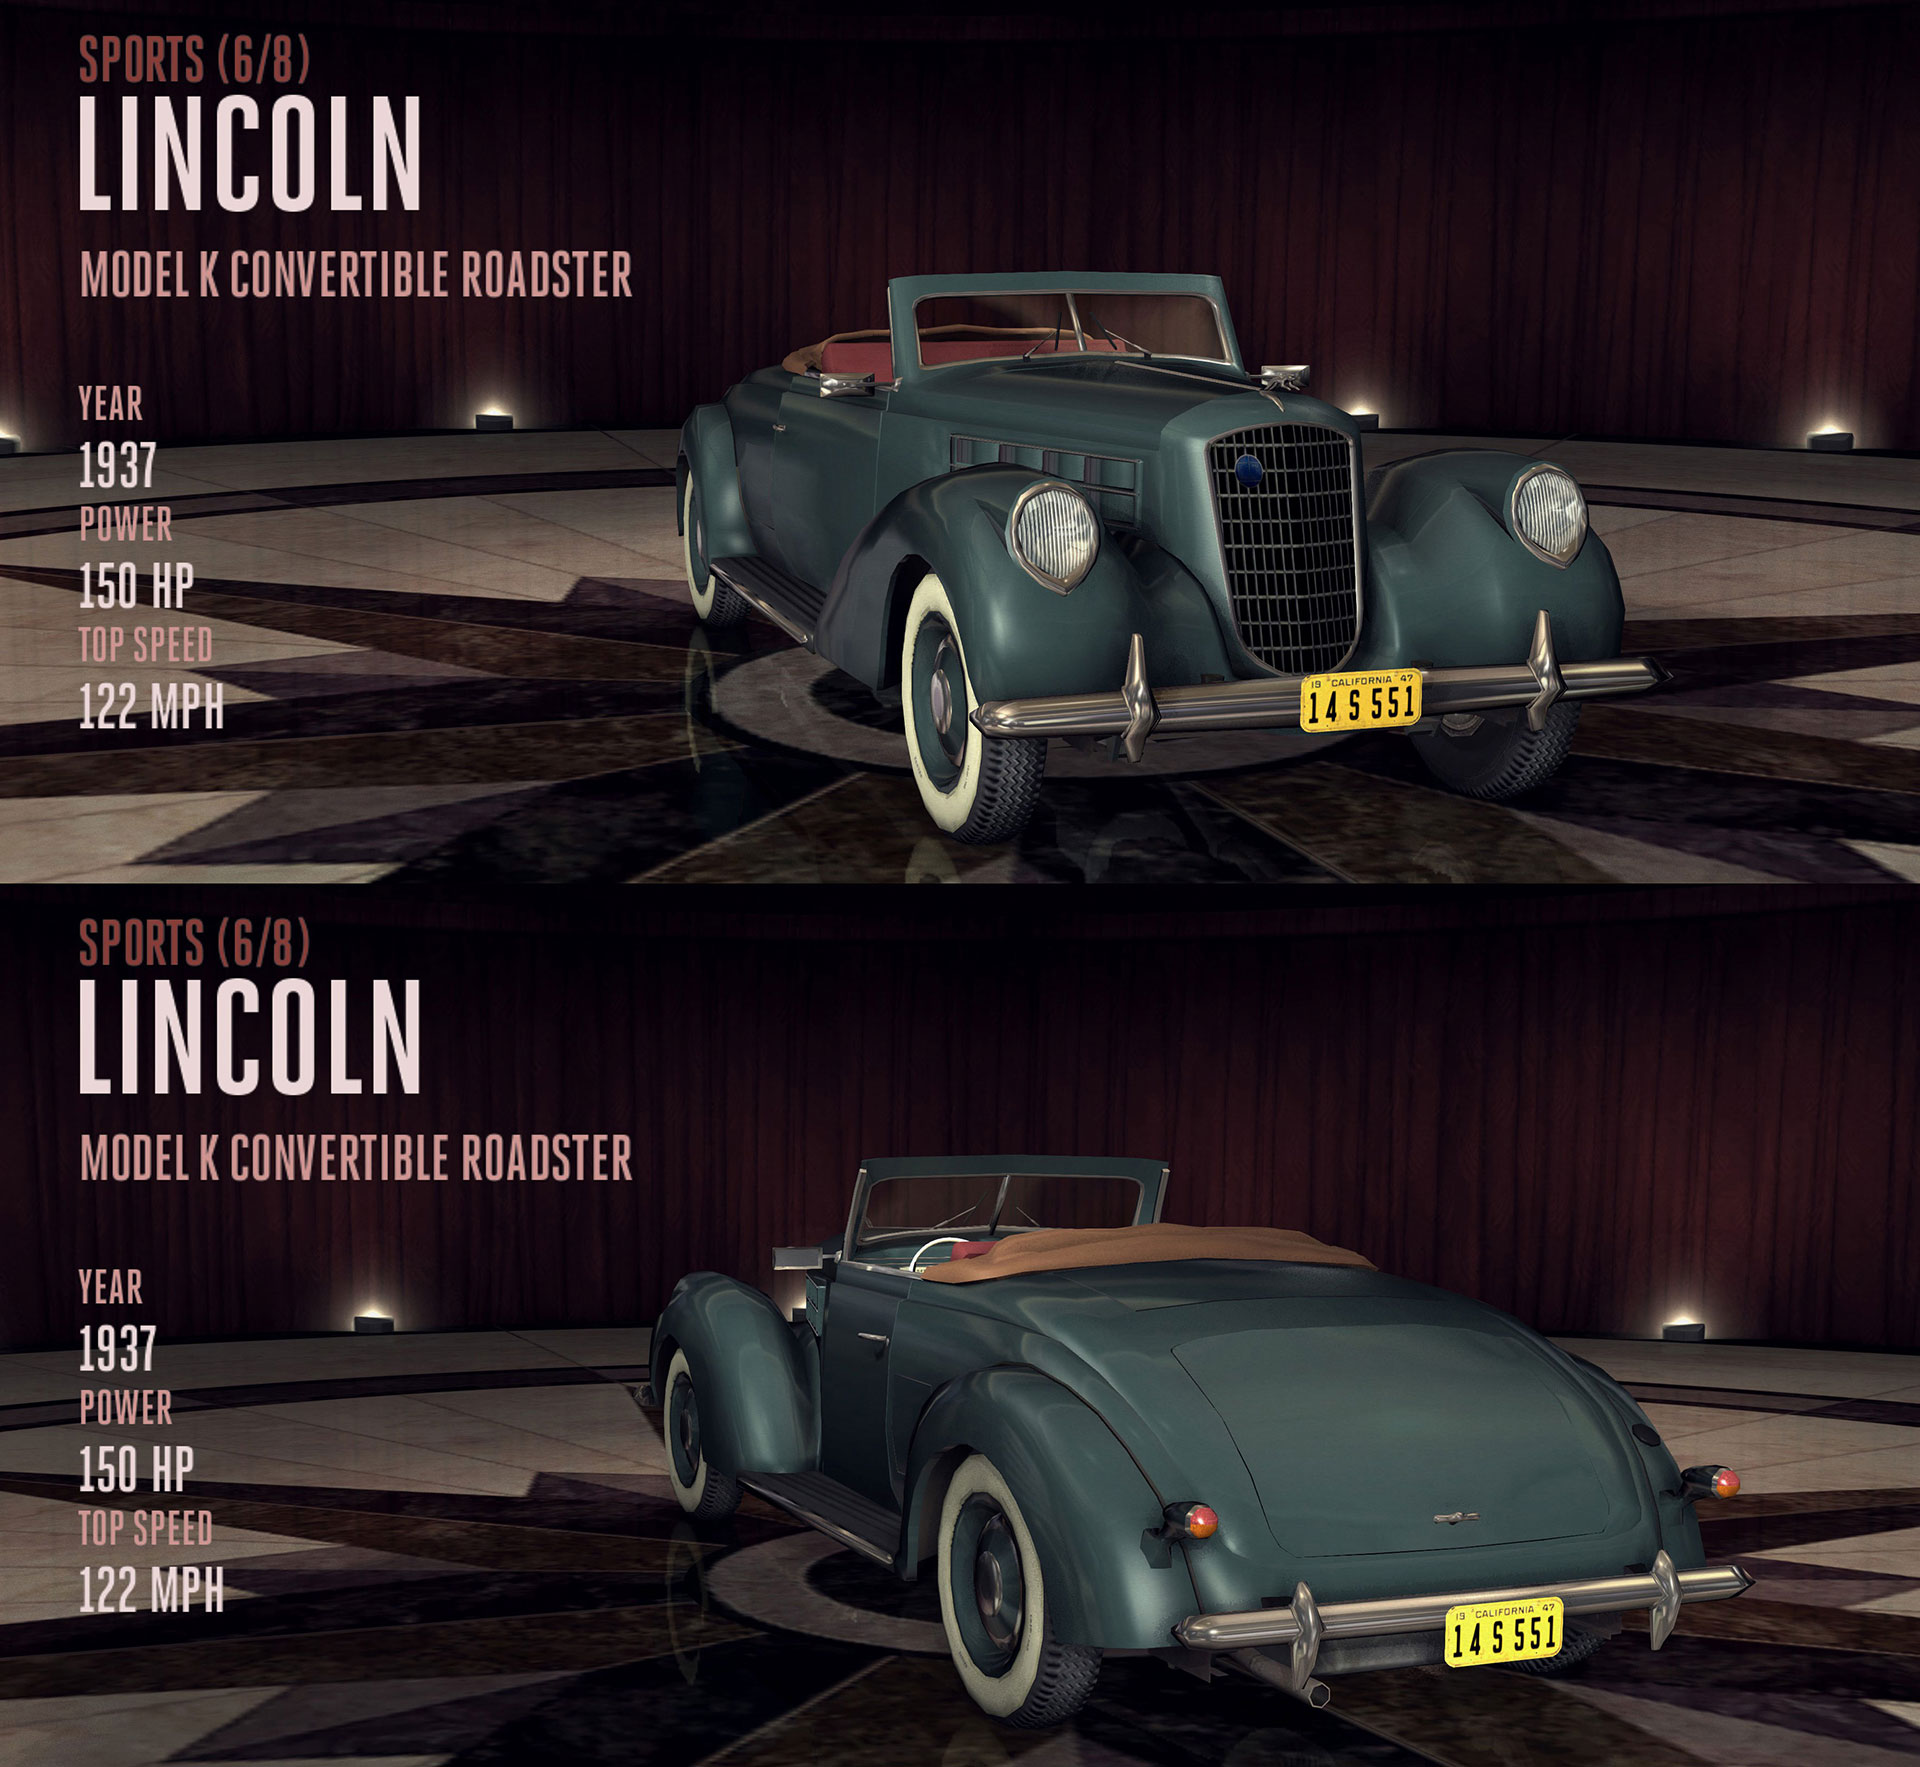 File:1937-lincoln-model-k-convertible-roadster.jpg